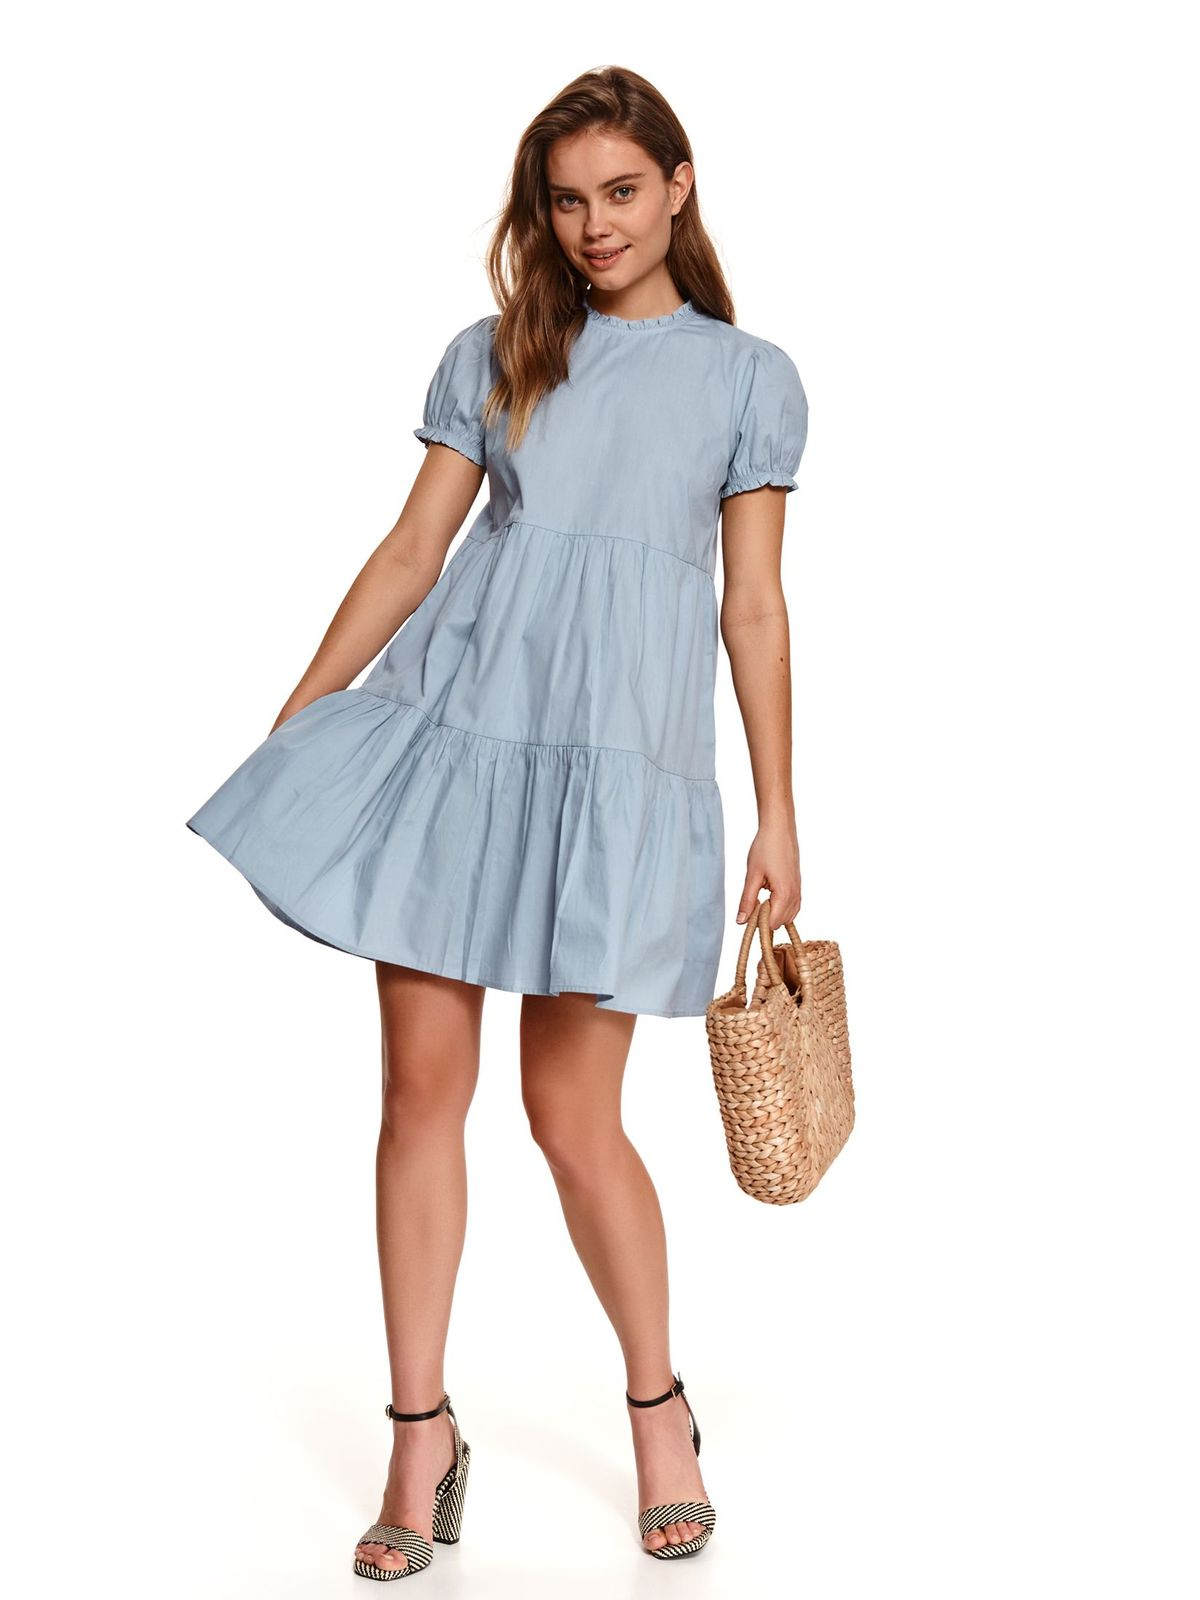 Lightblue dress short cut loose fit with turtle neck short sleeves